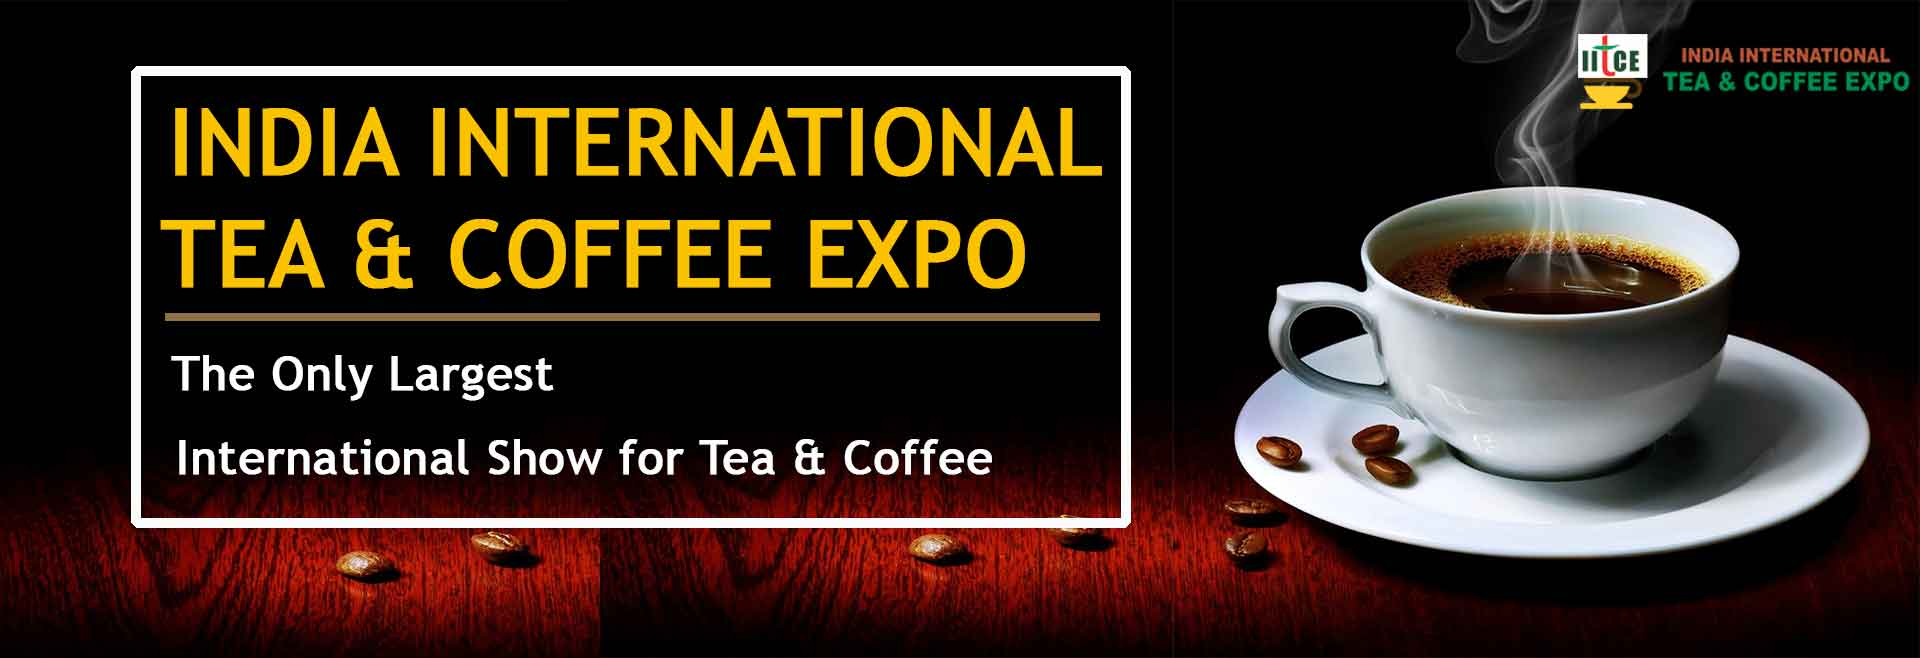 India International Tea and Coffee Expo